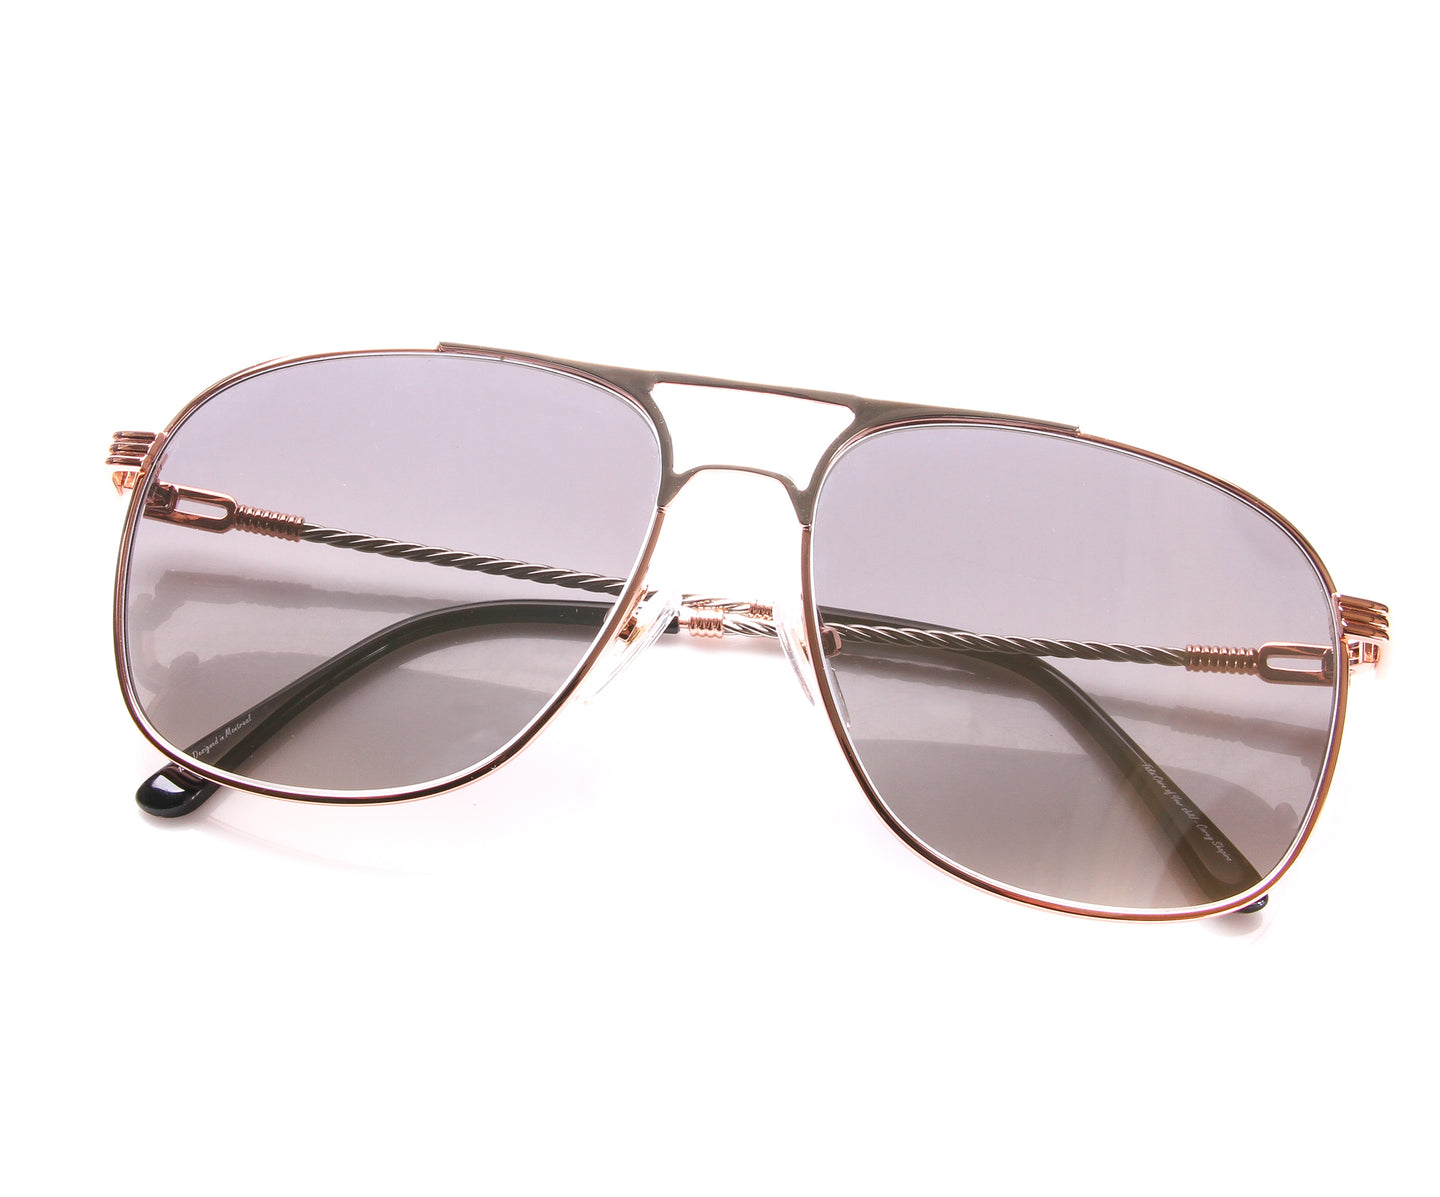 VF Snatch 18KT Rose Gold Two-Tone Signature Edition (Light Smoke), VF by Vintage Frames , glasses frames, eyeglasses online, eyeglass frames, mens glasses, womens glasses, buy glasses online, designer eyeglasses, vintage sunglasses, retro sunglasses, vintage glasses, sunglass, eyeglass, glasses, lens, vintage frames company, vf